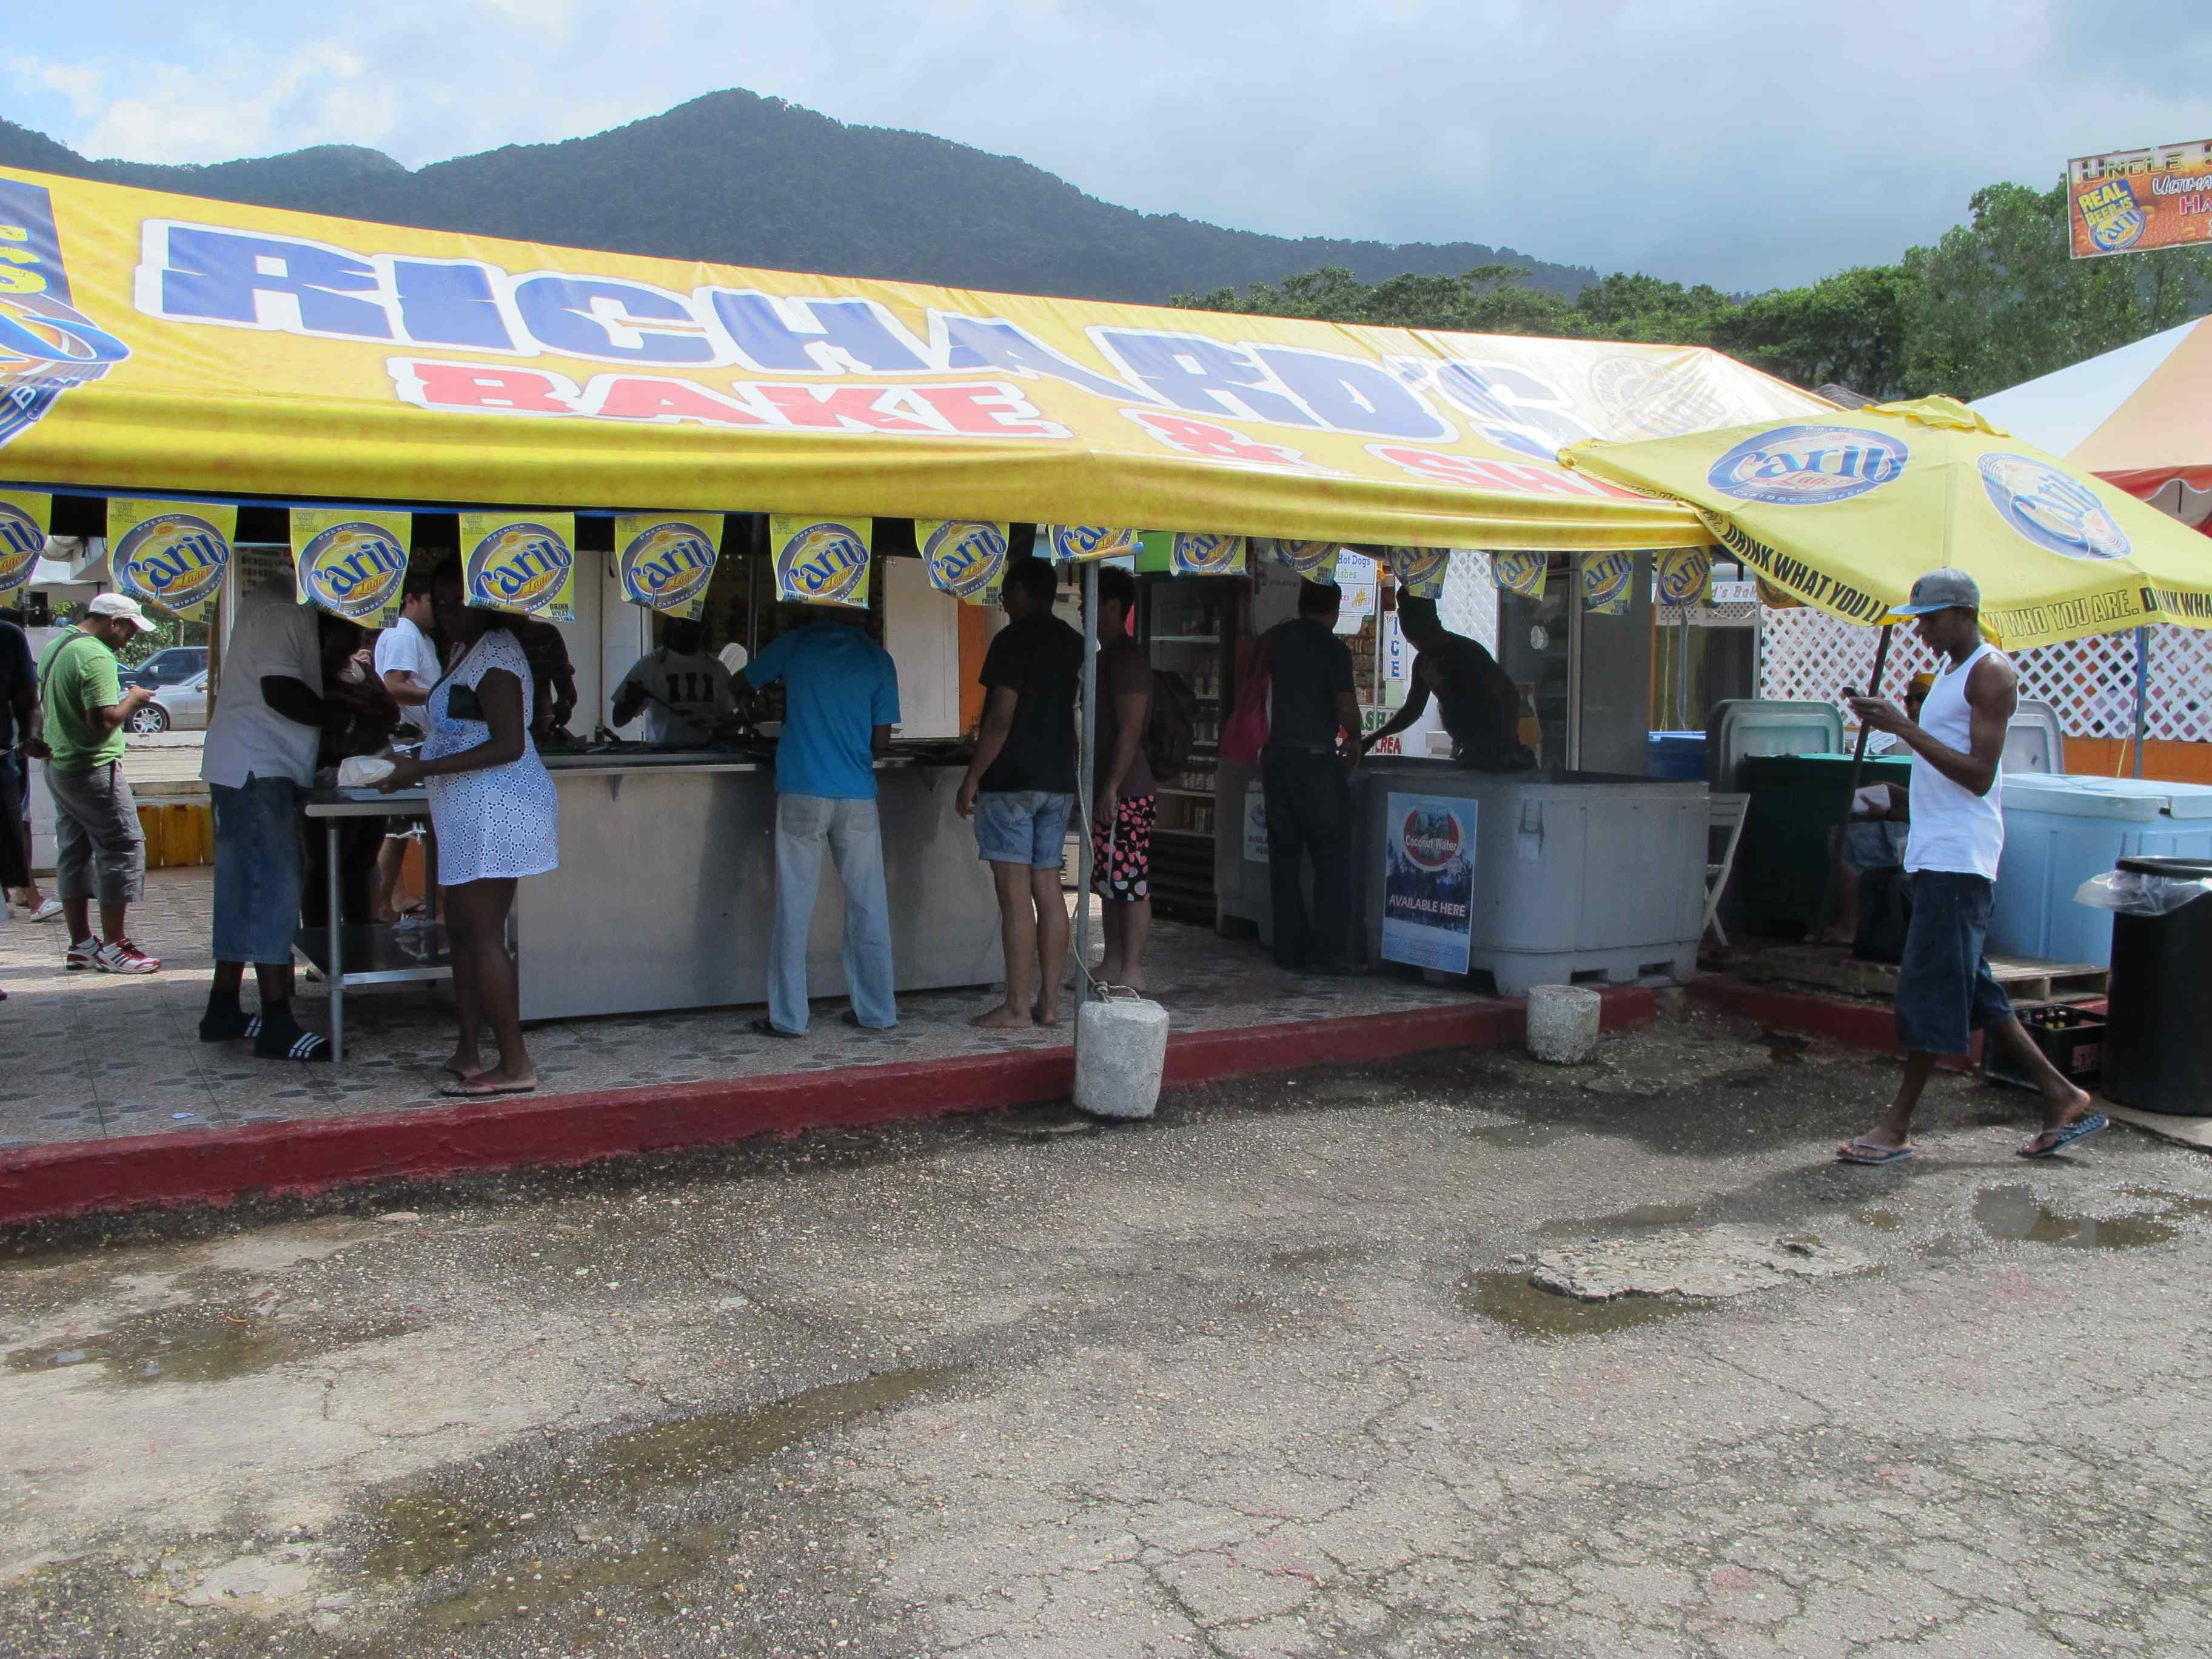 The famous Richard's Bake and Shark, a fried fish sandwich with a unique and delicious buffet of toppings, Maracas Beach